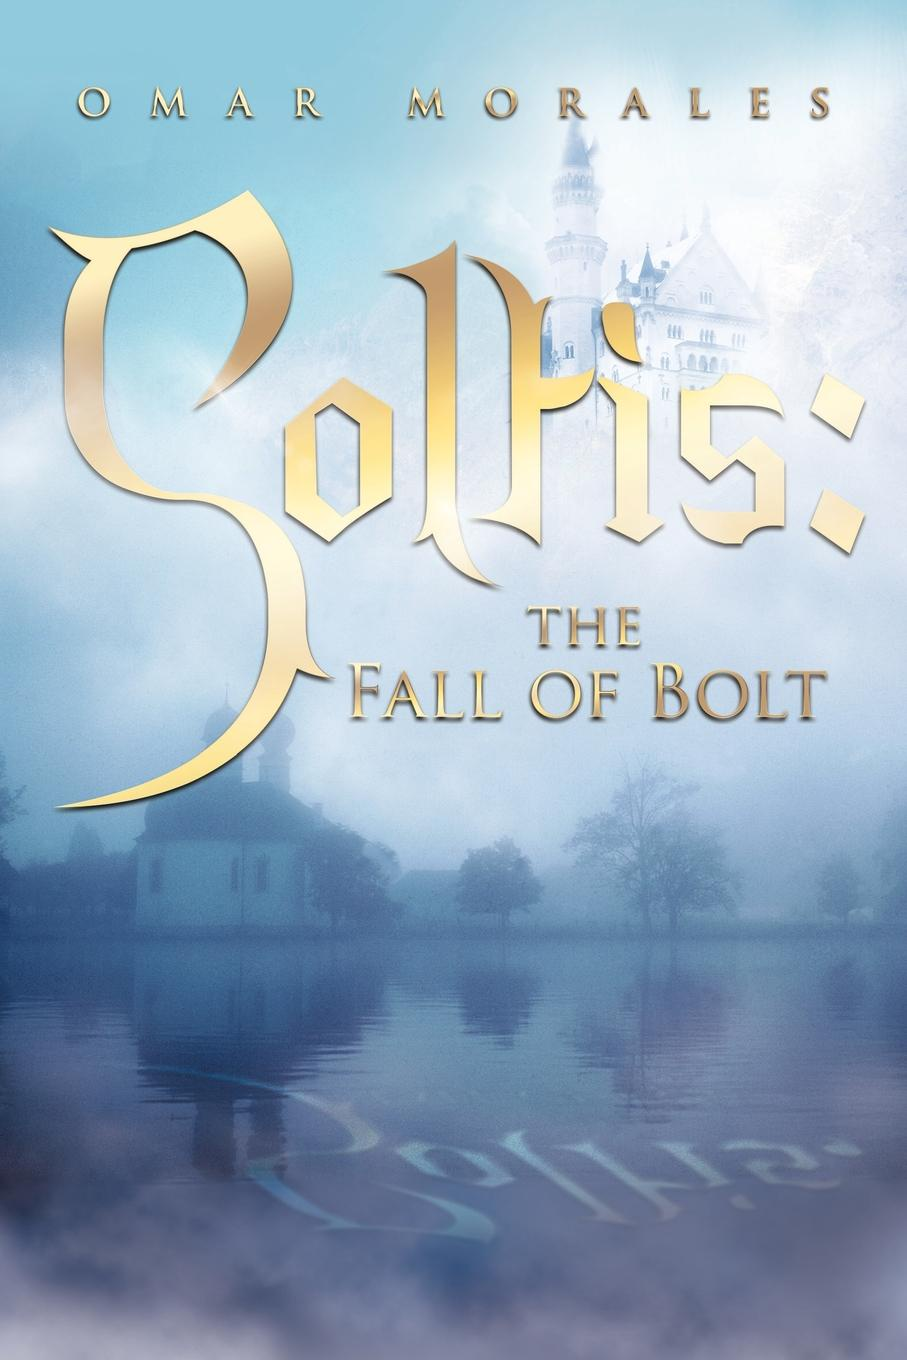 Omar Morales Soltis. The Fall of Bolt